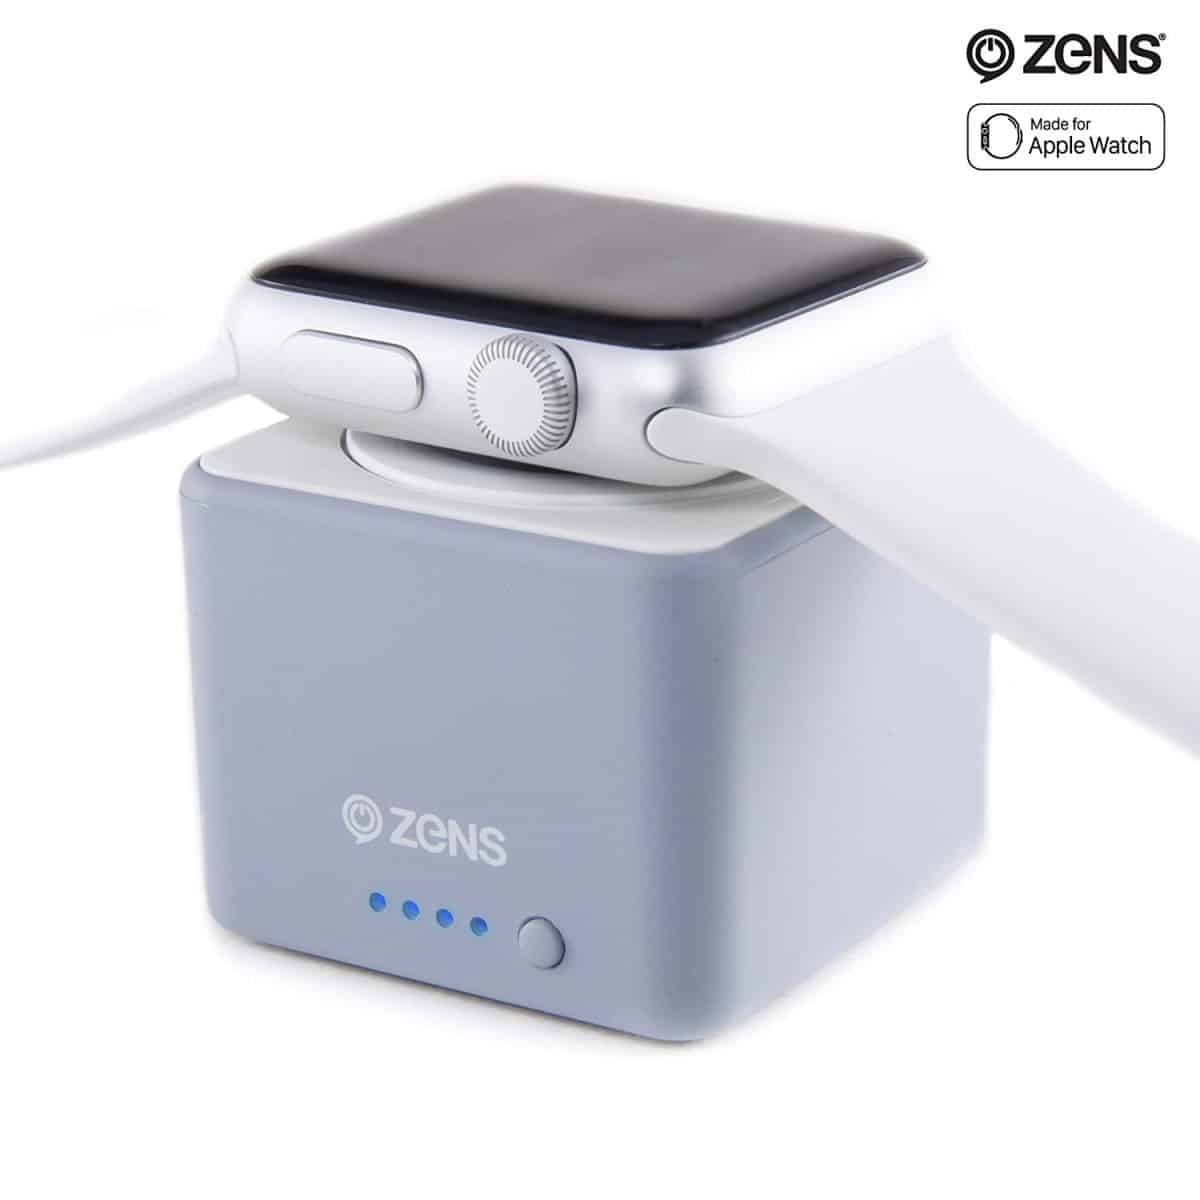 ZENS Apple Watch Powerbank | Apple Watch Accessories You Didn't Know You Needed